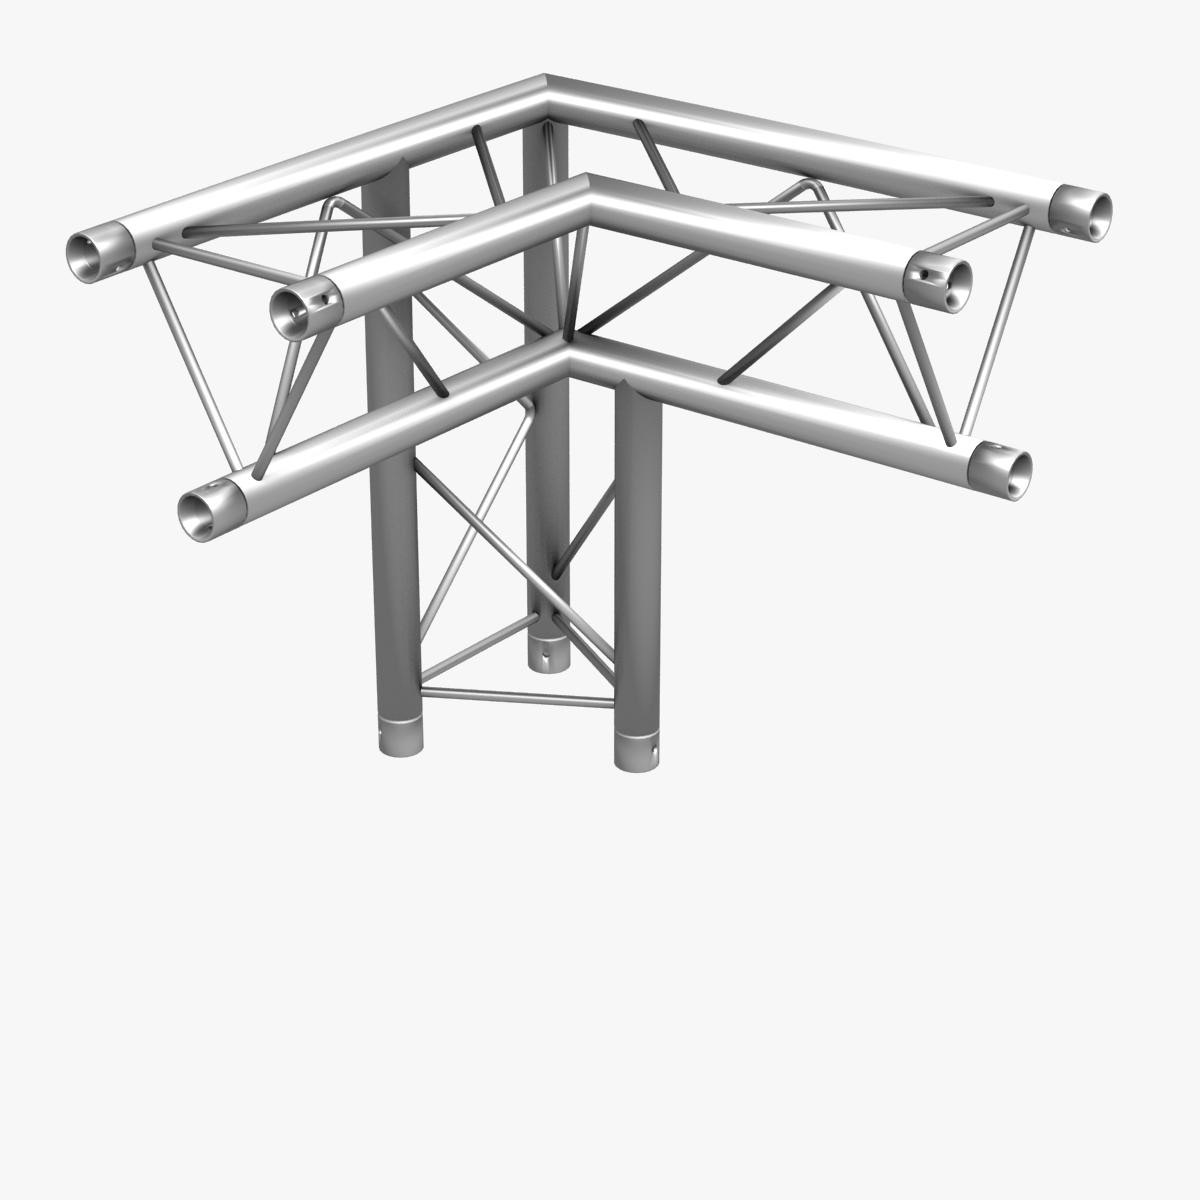 trusses square triangular beam bundle 00 collection 17 on behance Bolt Gage for Beams thank you